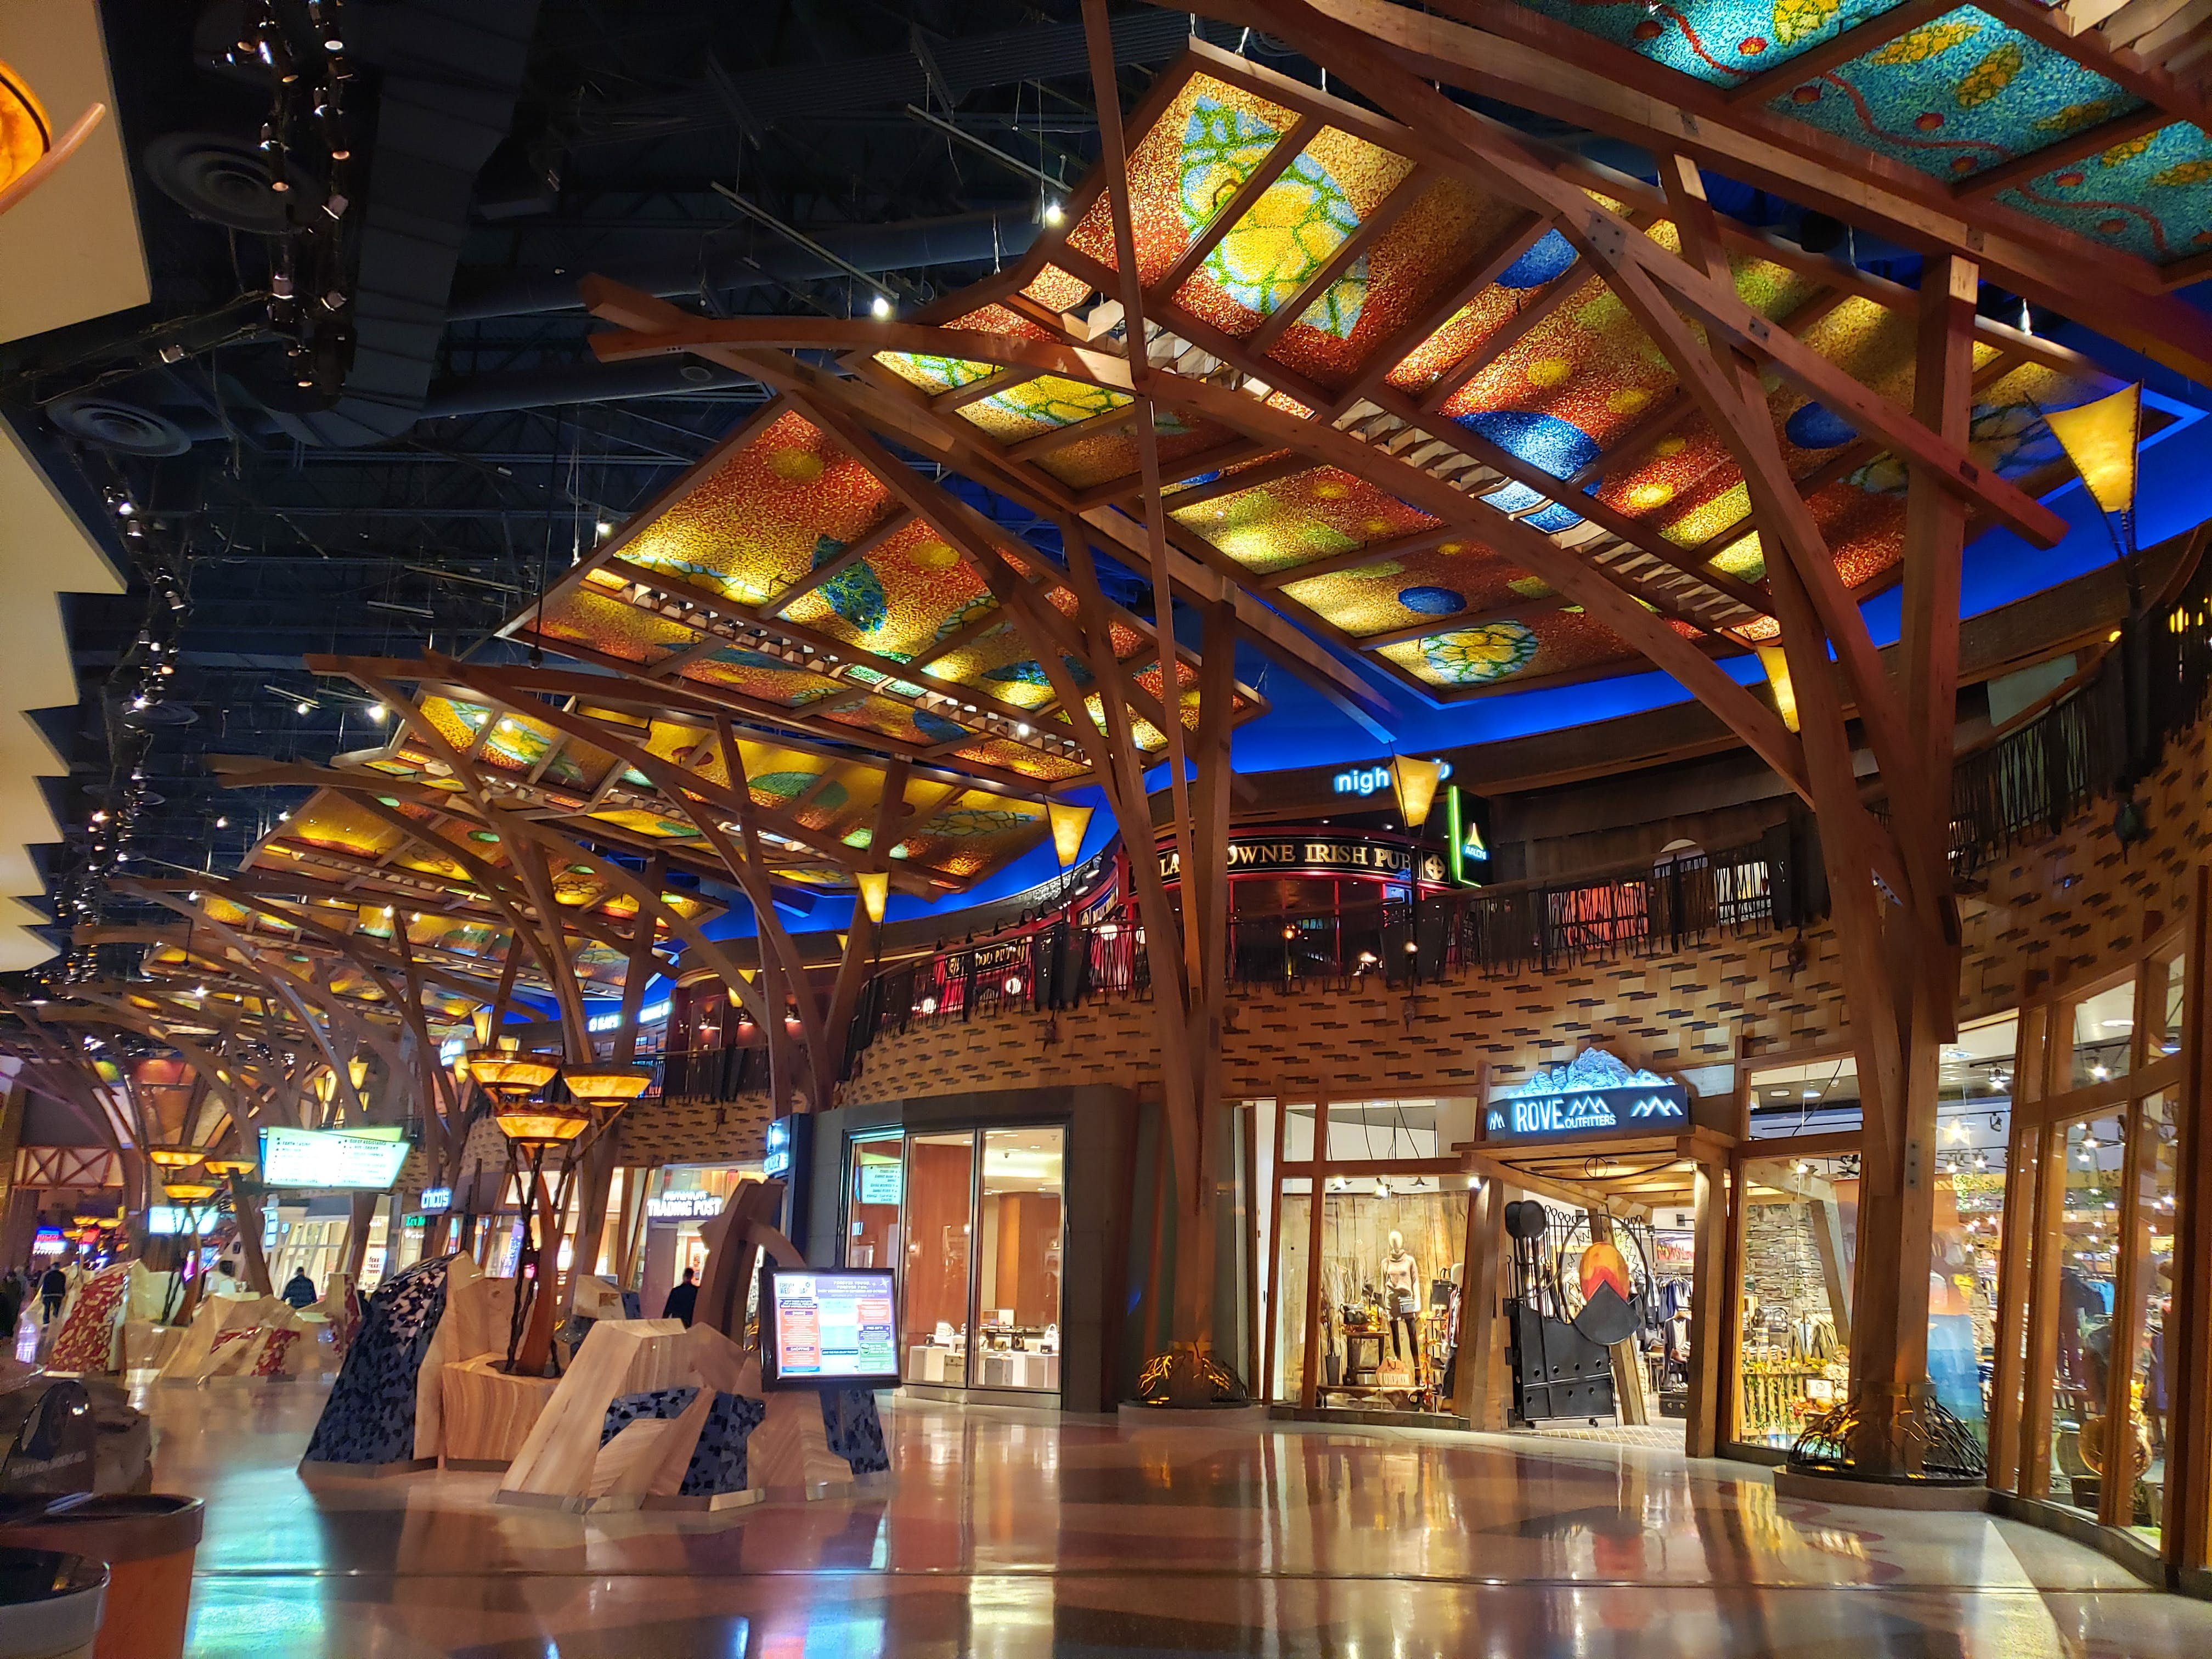 decorative wrought iron indoor stair railings buy.htm mohegan sun is the east coast s hotspot for music and gambling  mohegan sun is the east coast s hotspot